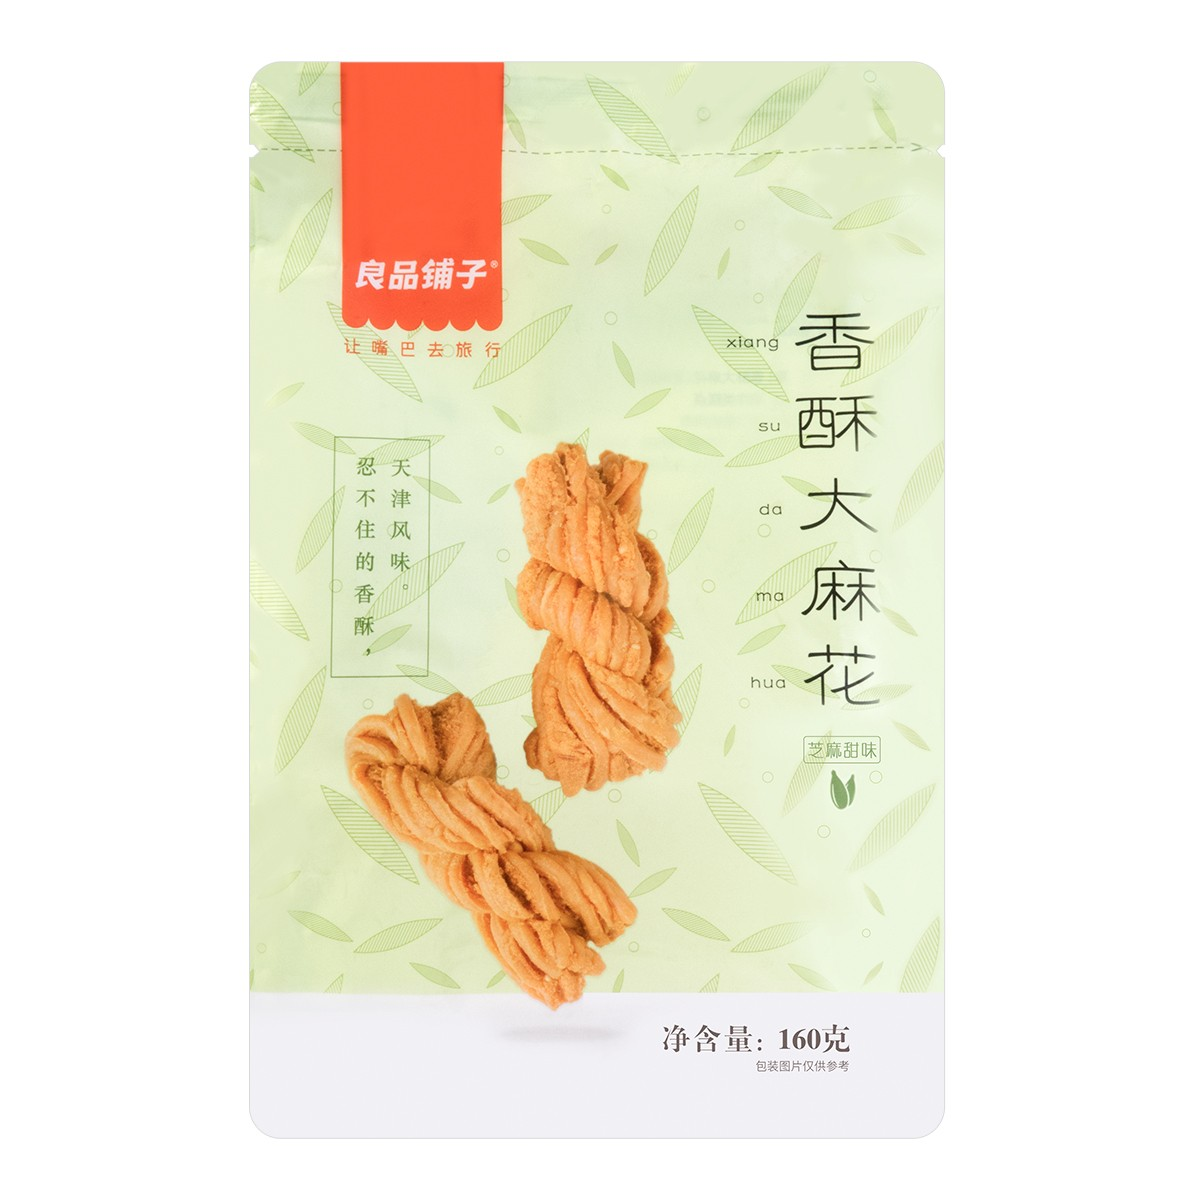 BESTORE Crispy Fried Dough Twist 160g